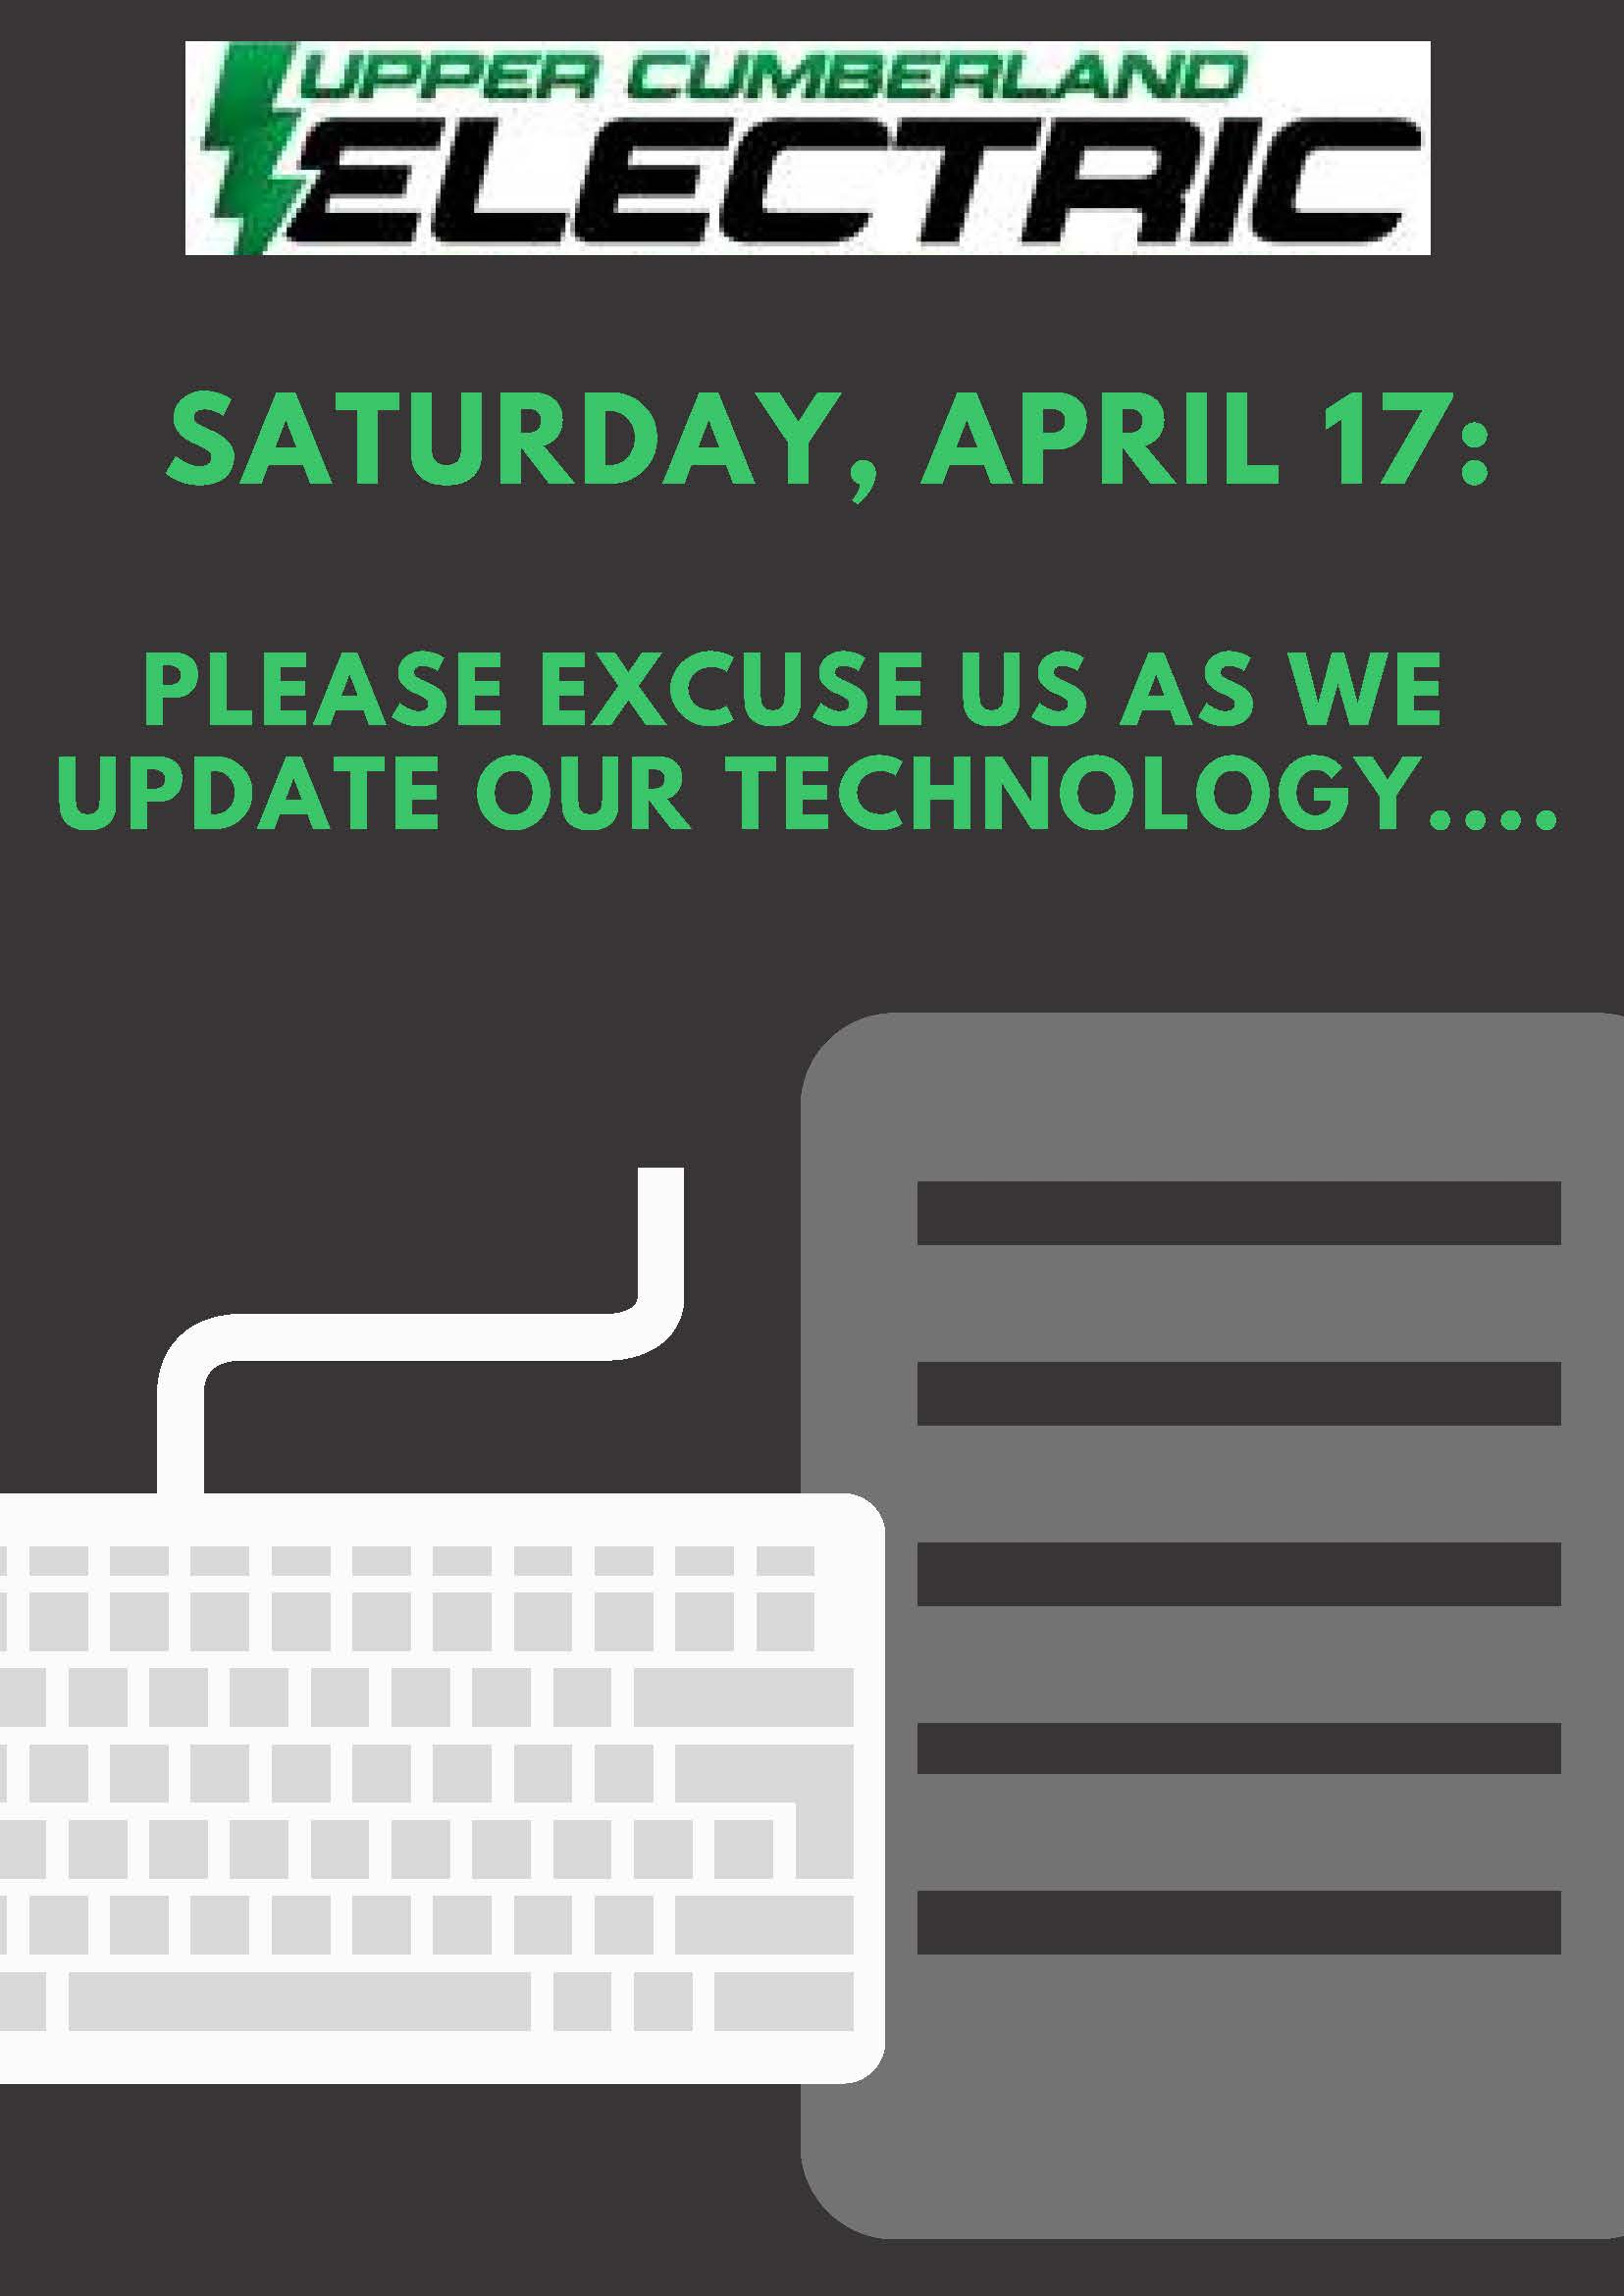 IT System Updates Set for Saturday